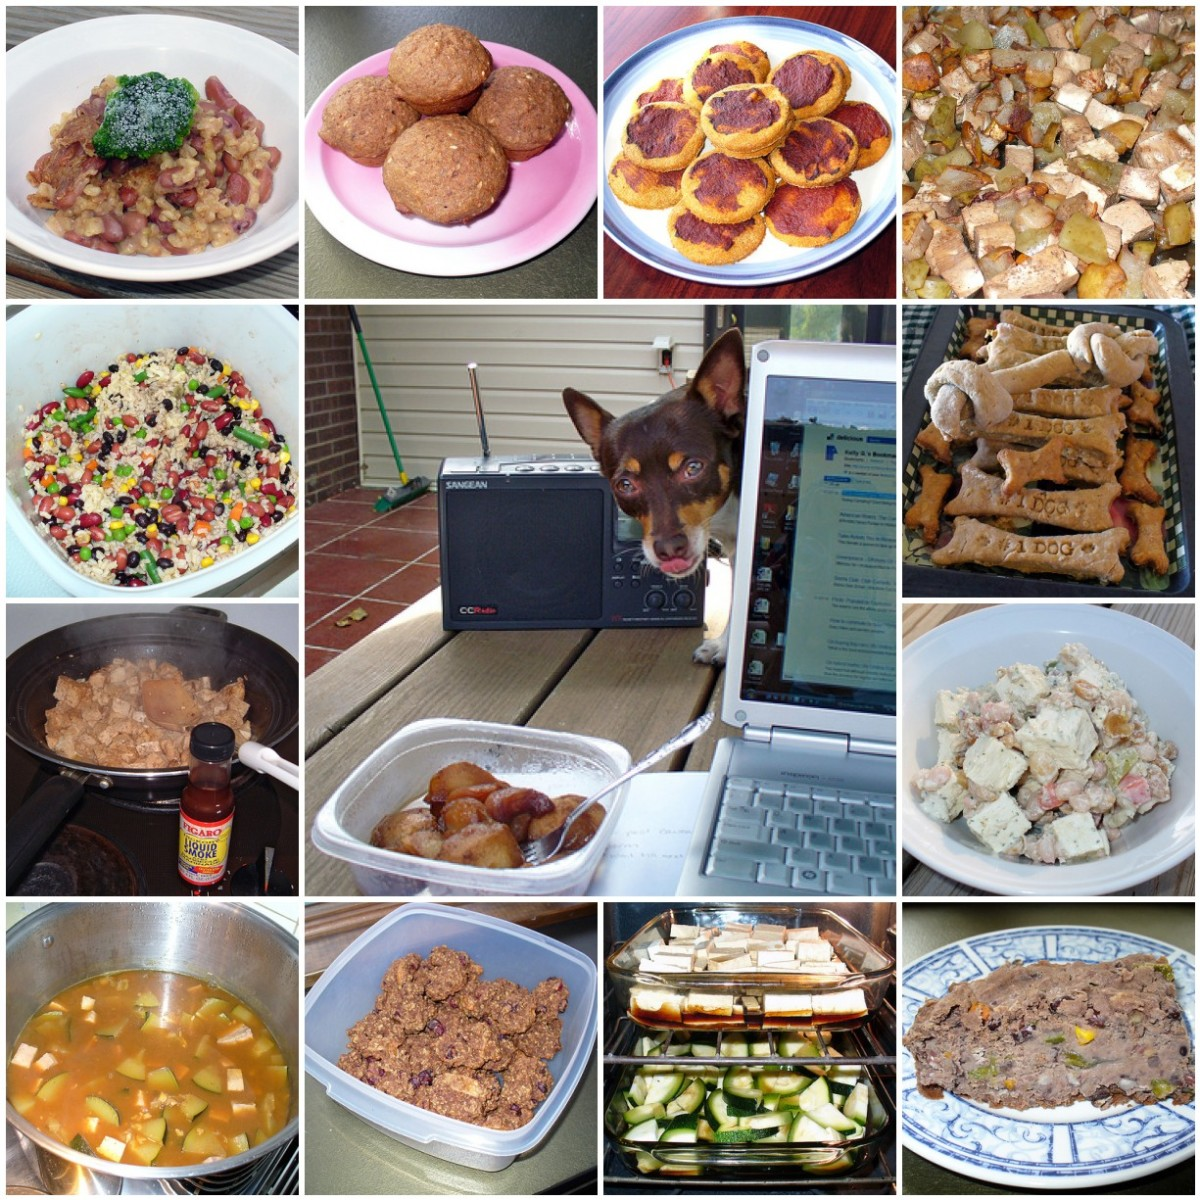 2 Healthy Homemade Dog Food Recipes Pethelpful By Fellow Animal Lovers And Experts